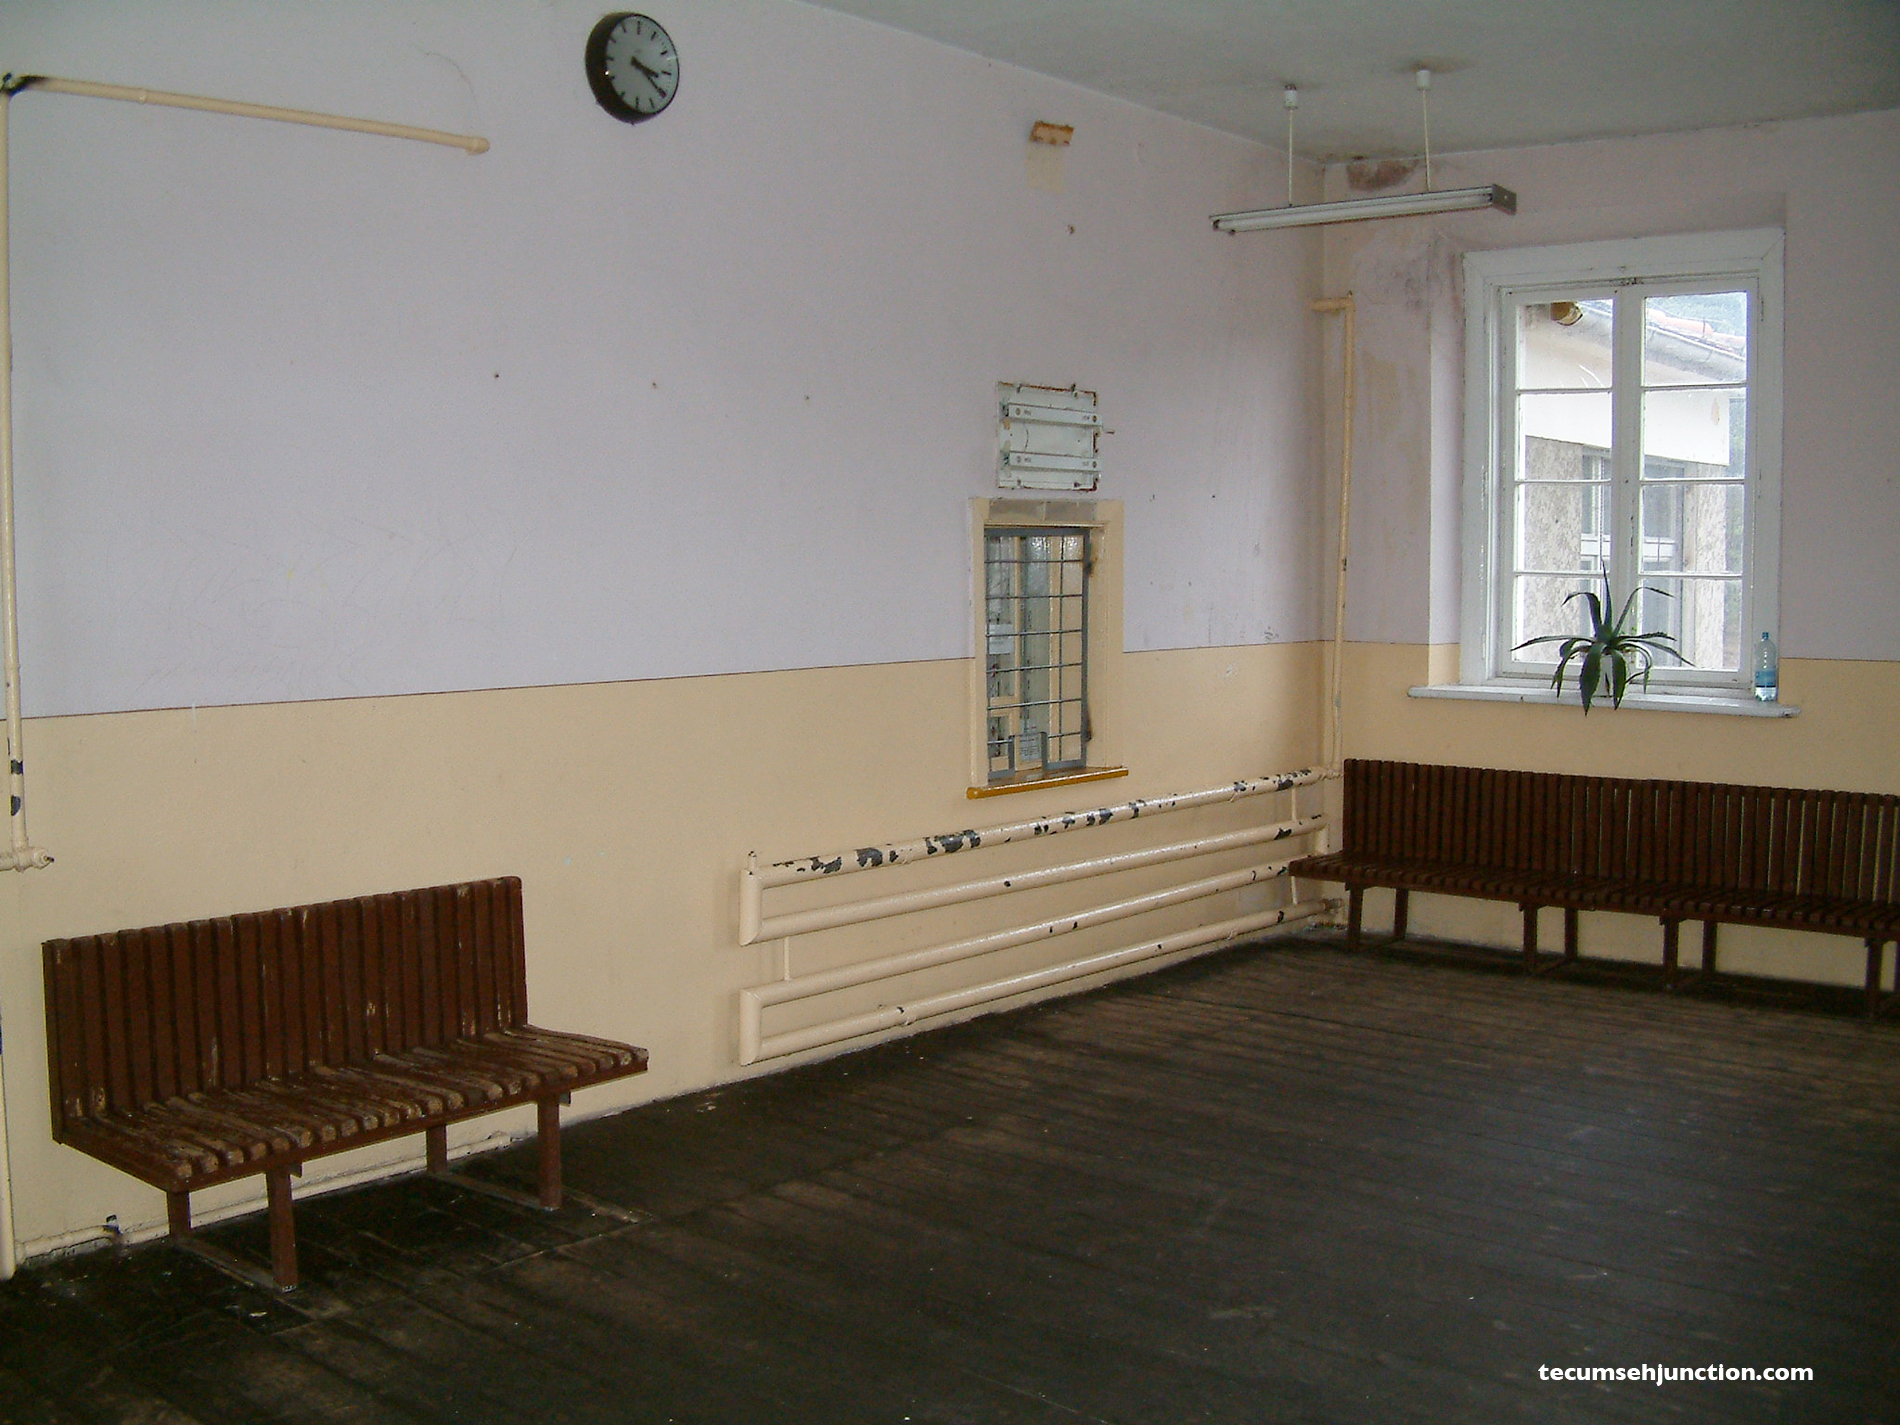 The waiting room at Bąk